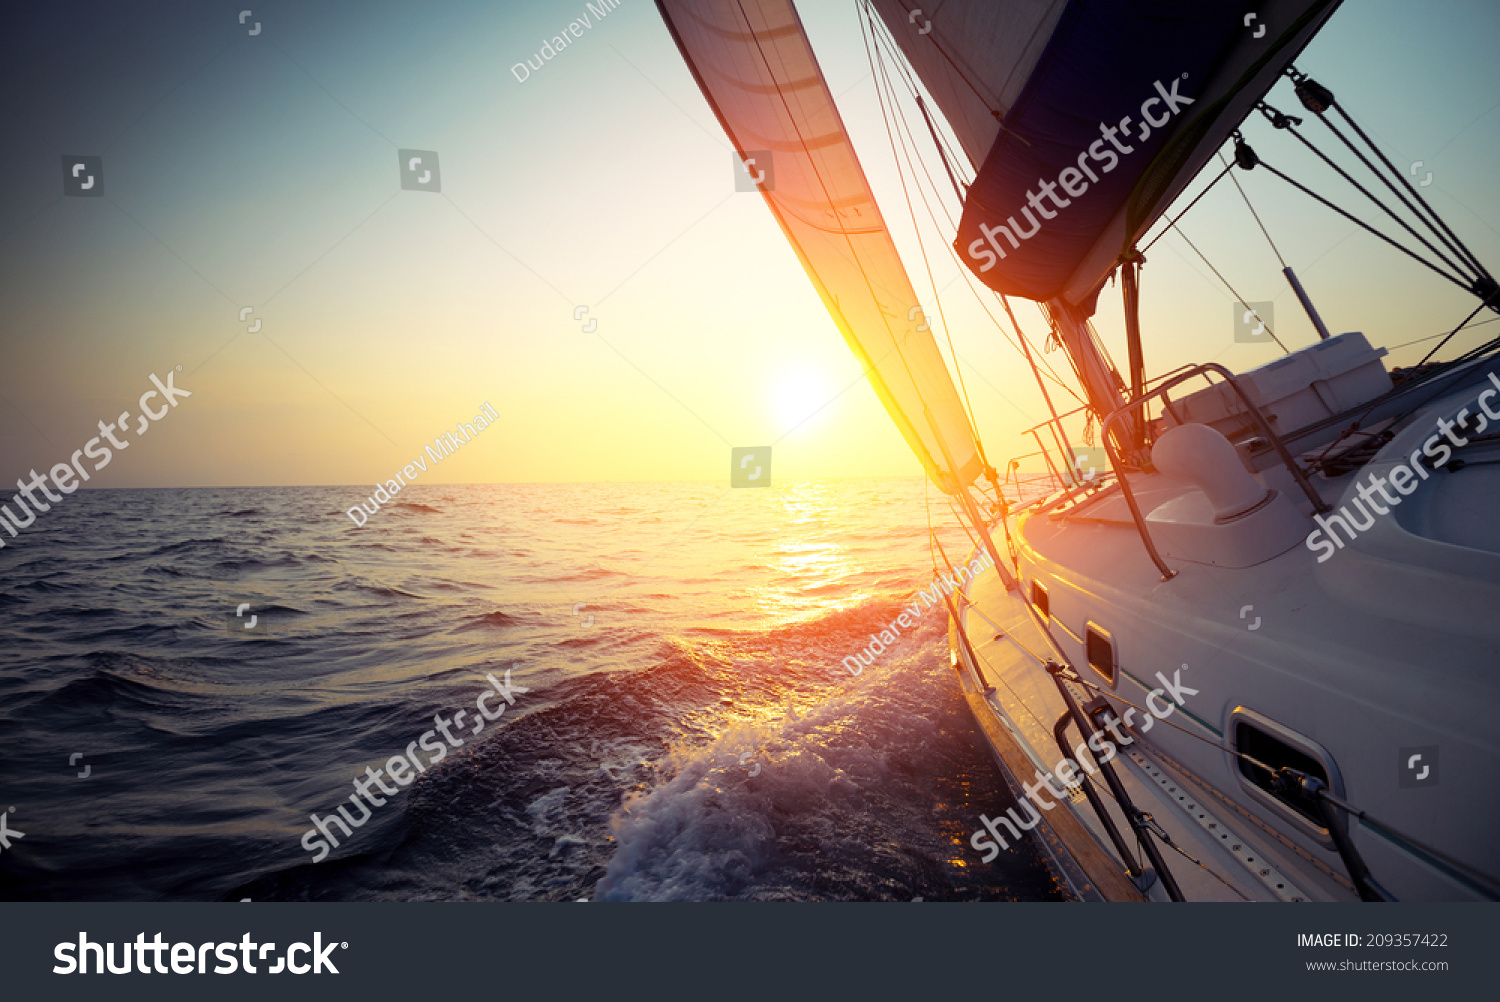 Sail boat gliding in open sea at sunset #209357422